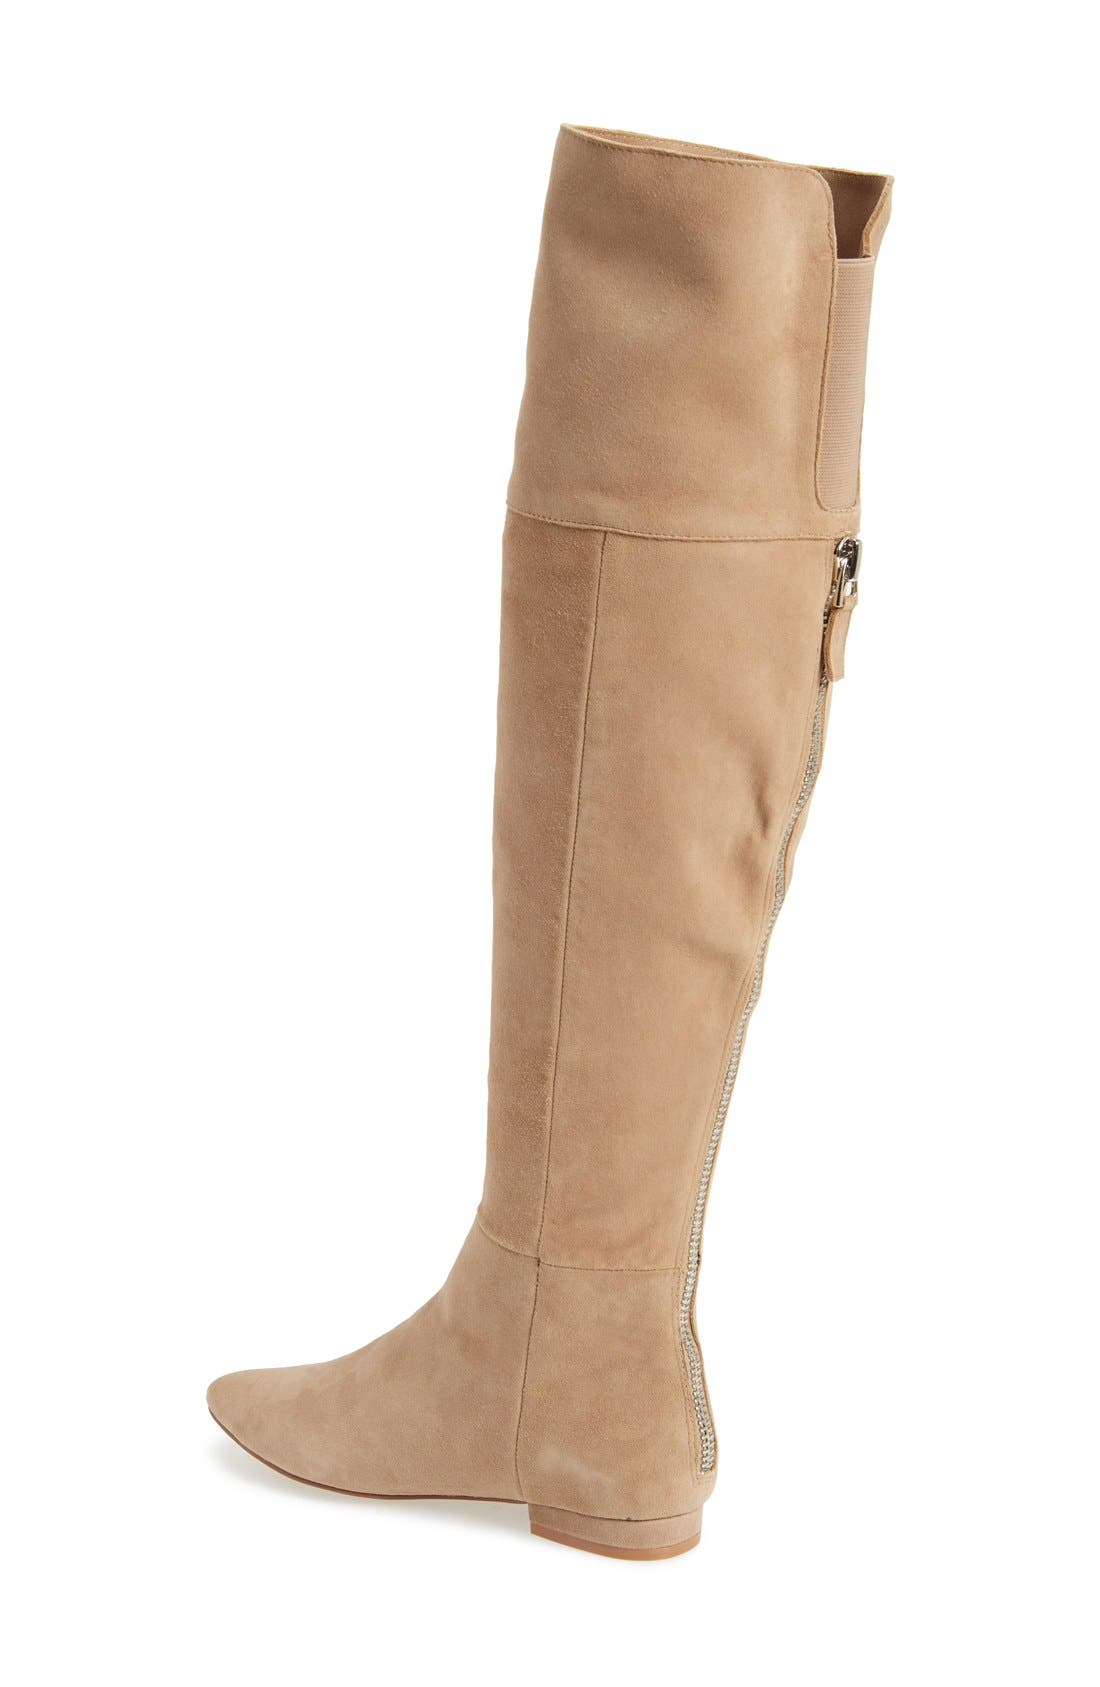 'York' Over the Knee Boot,                             Alternate thumbnail 2, color,                             250